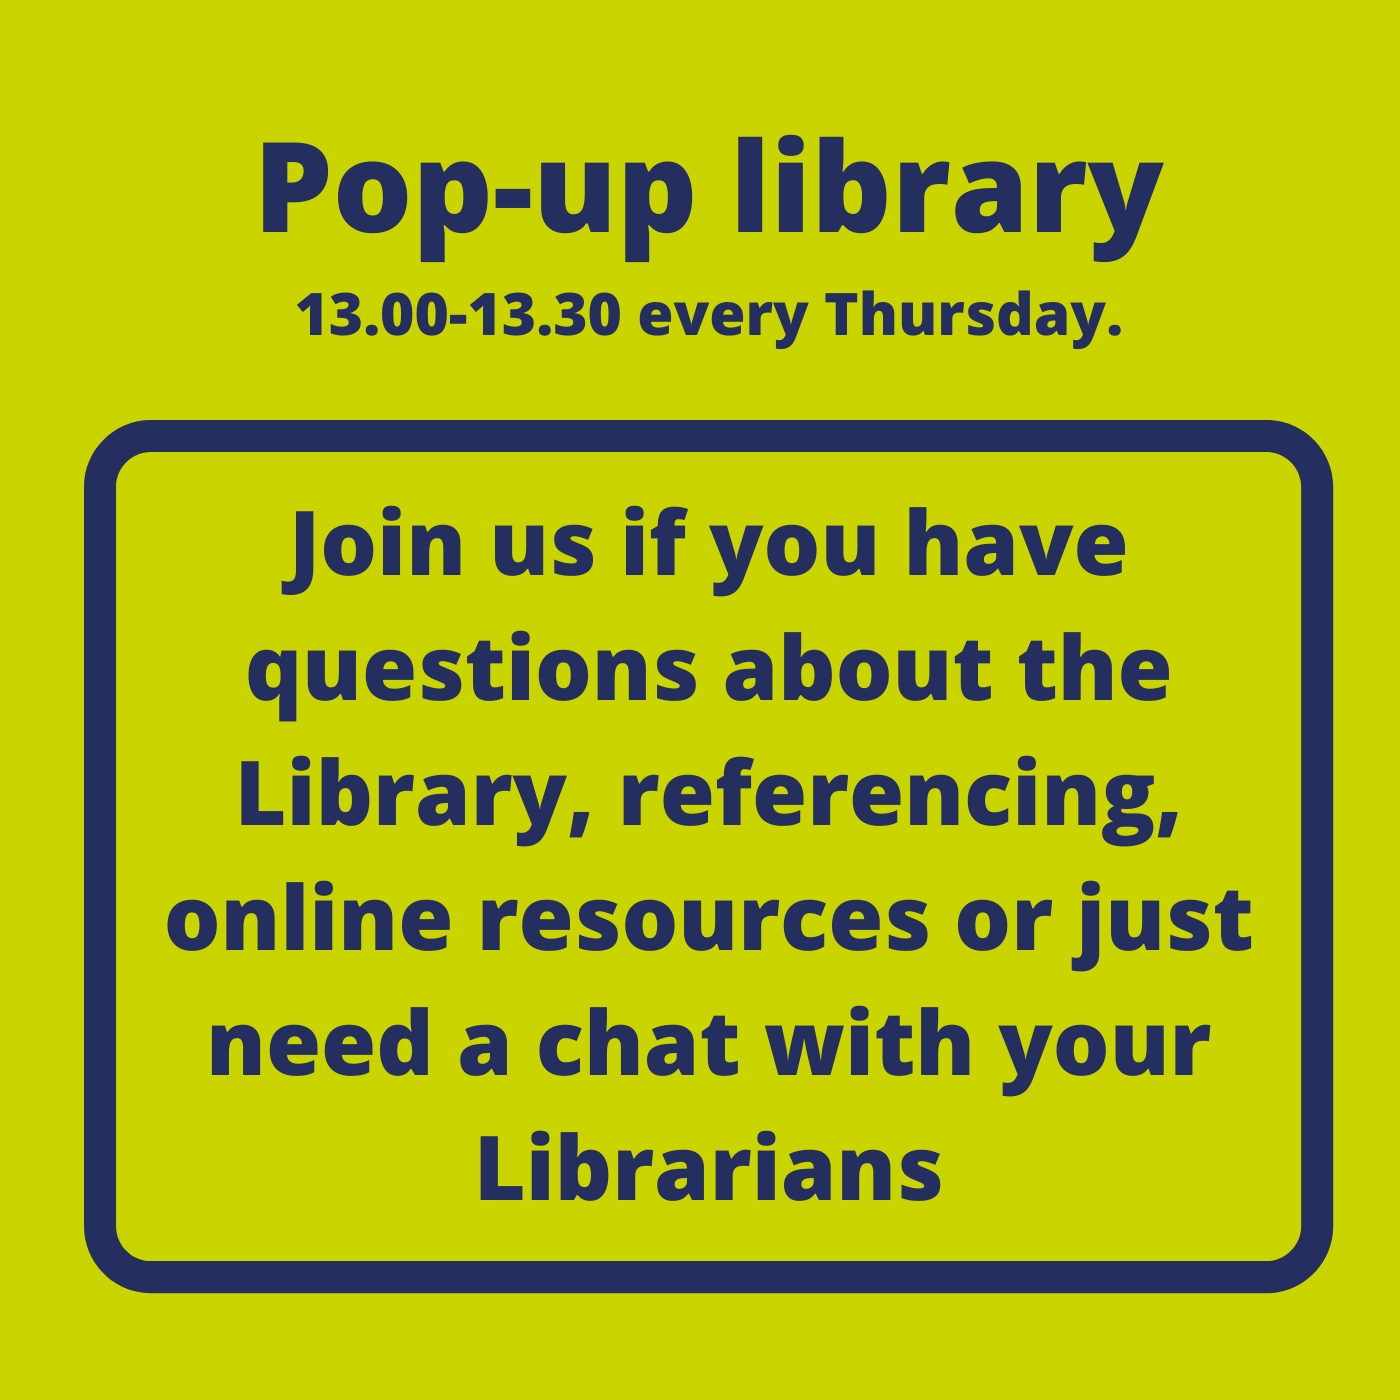 Pop-up library 13:00-13:30 every Thursday